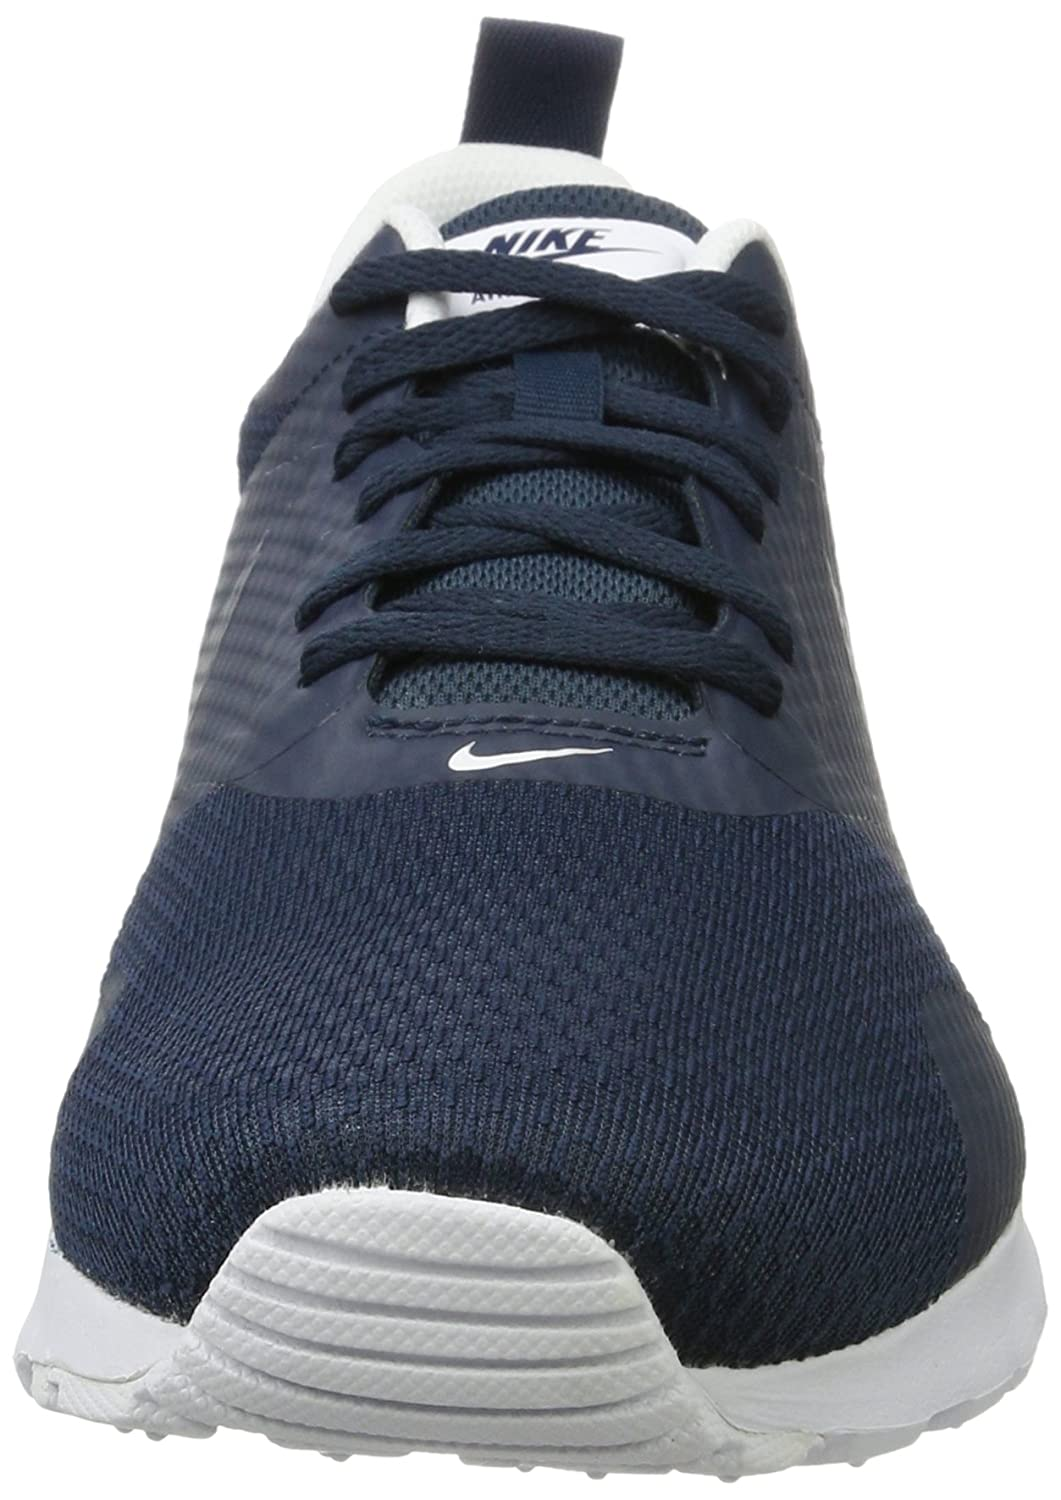 best website 2b144 fb707 Amazon.com   Nike Men s Air Max Tavas Running Shoes   Road Running